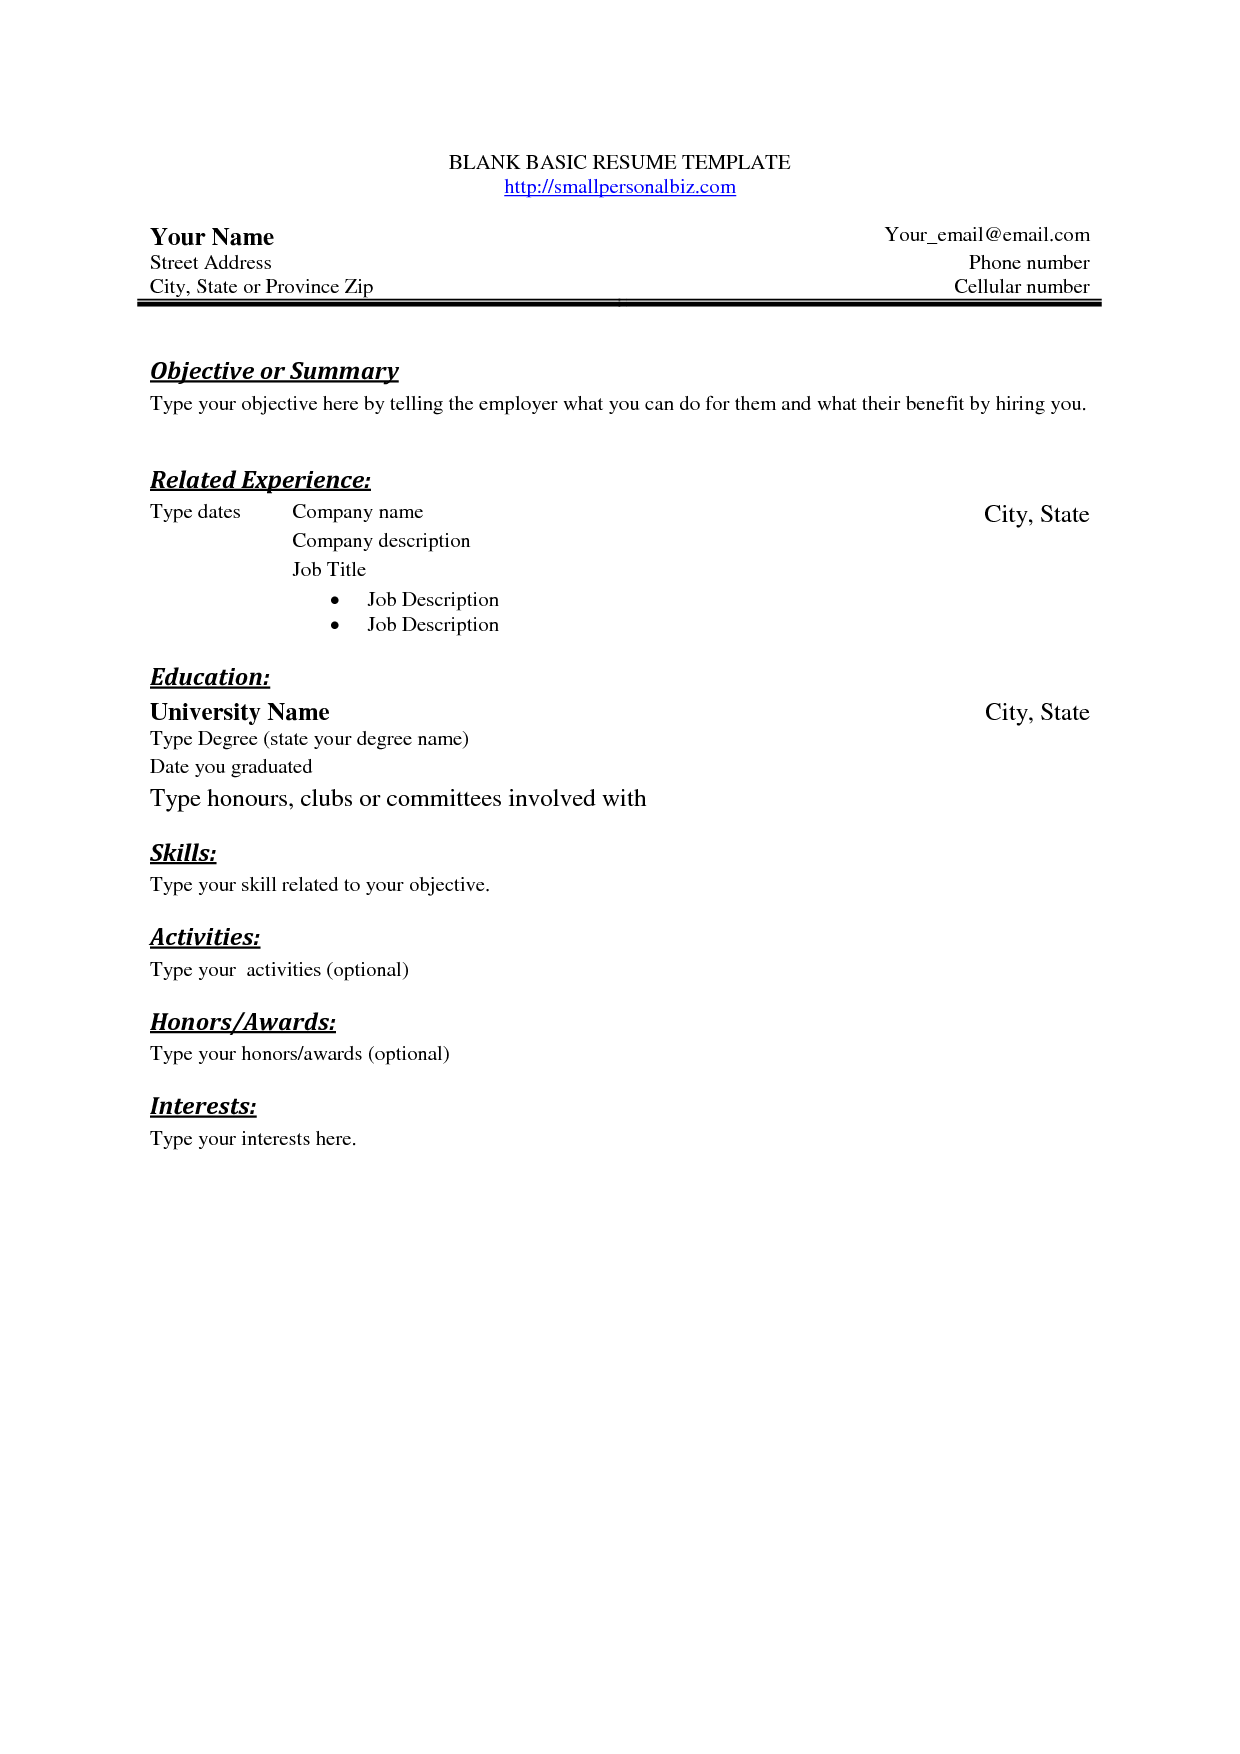 Perfect Stylist And Luxury Simple Resume Layout 10 Free Basic Blank Resume Template    Resume Example  Free Basic Resume Examples